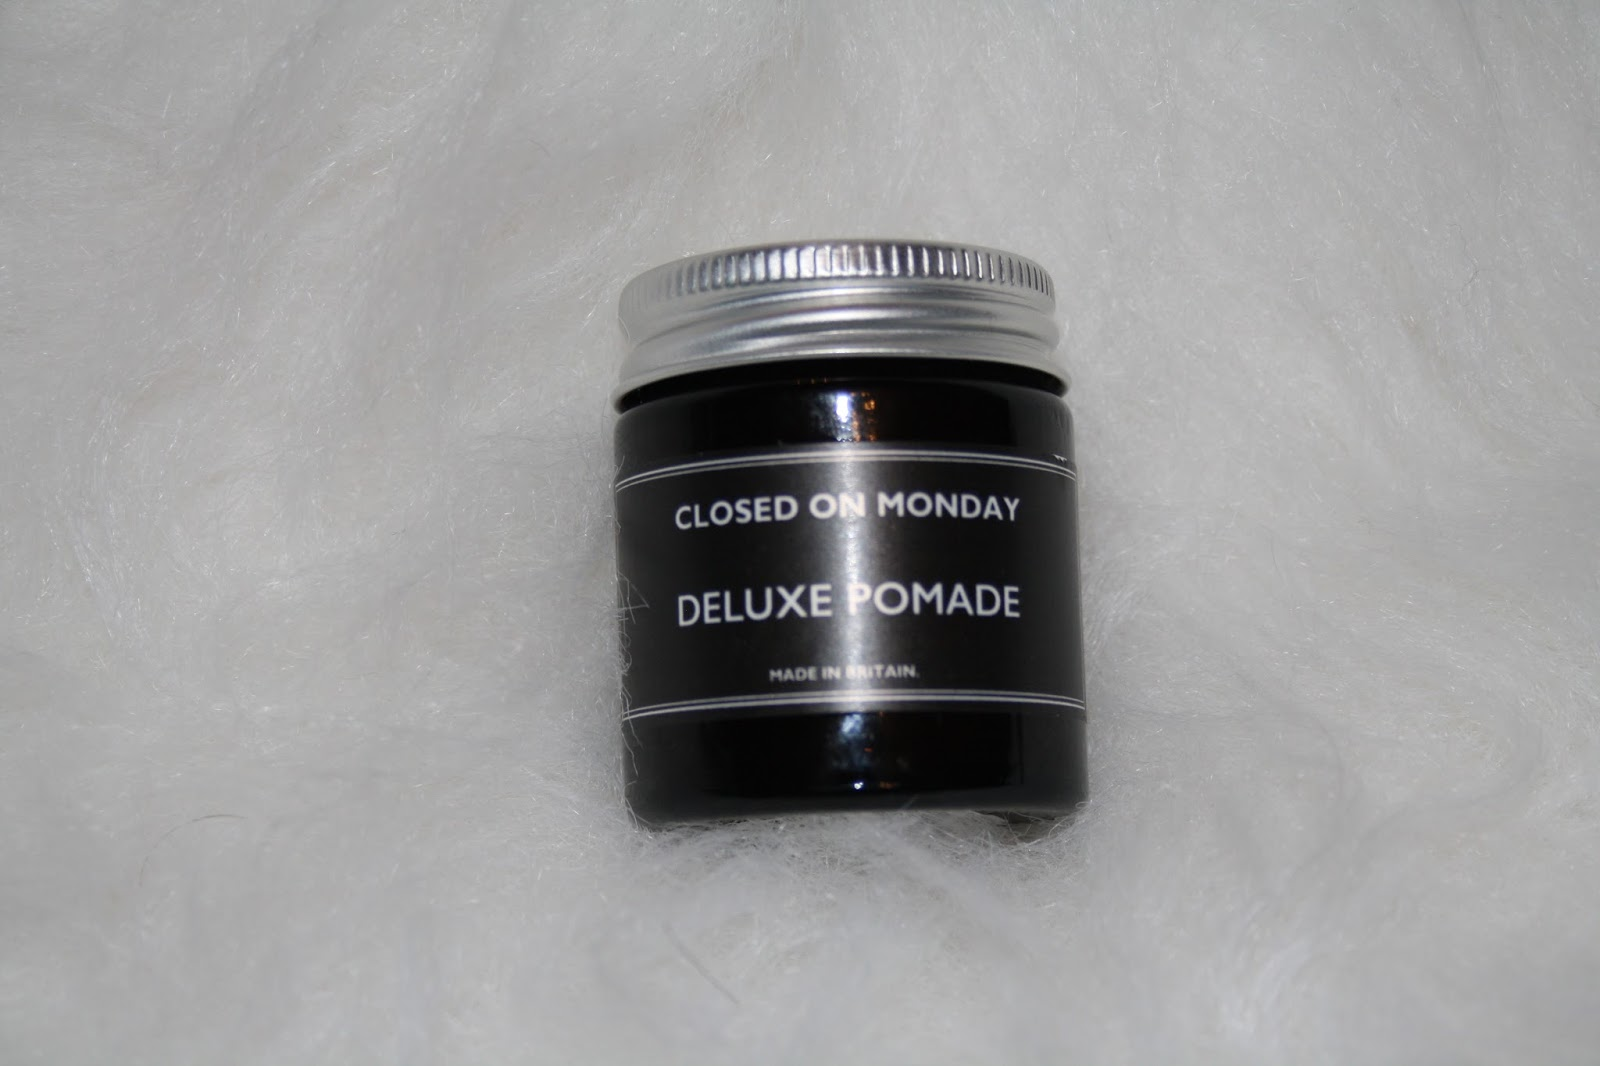 Closed on Monday Deluxe Pomade